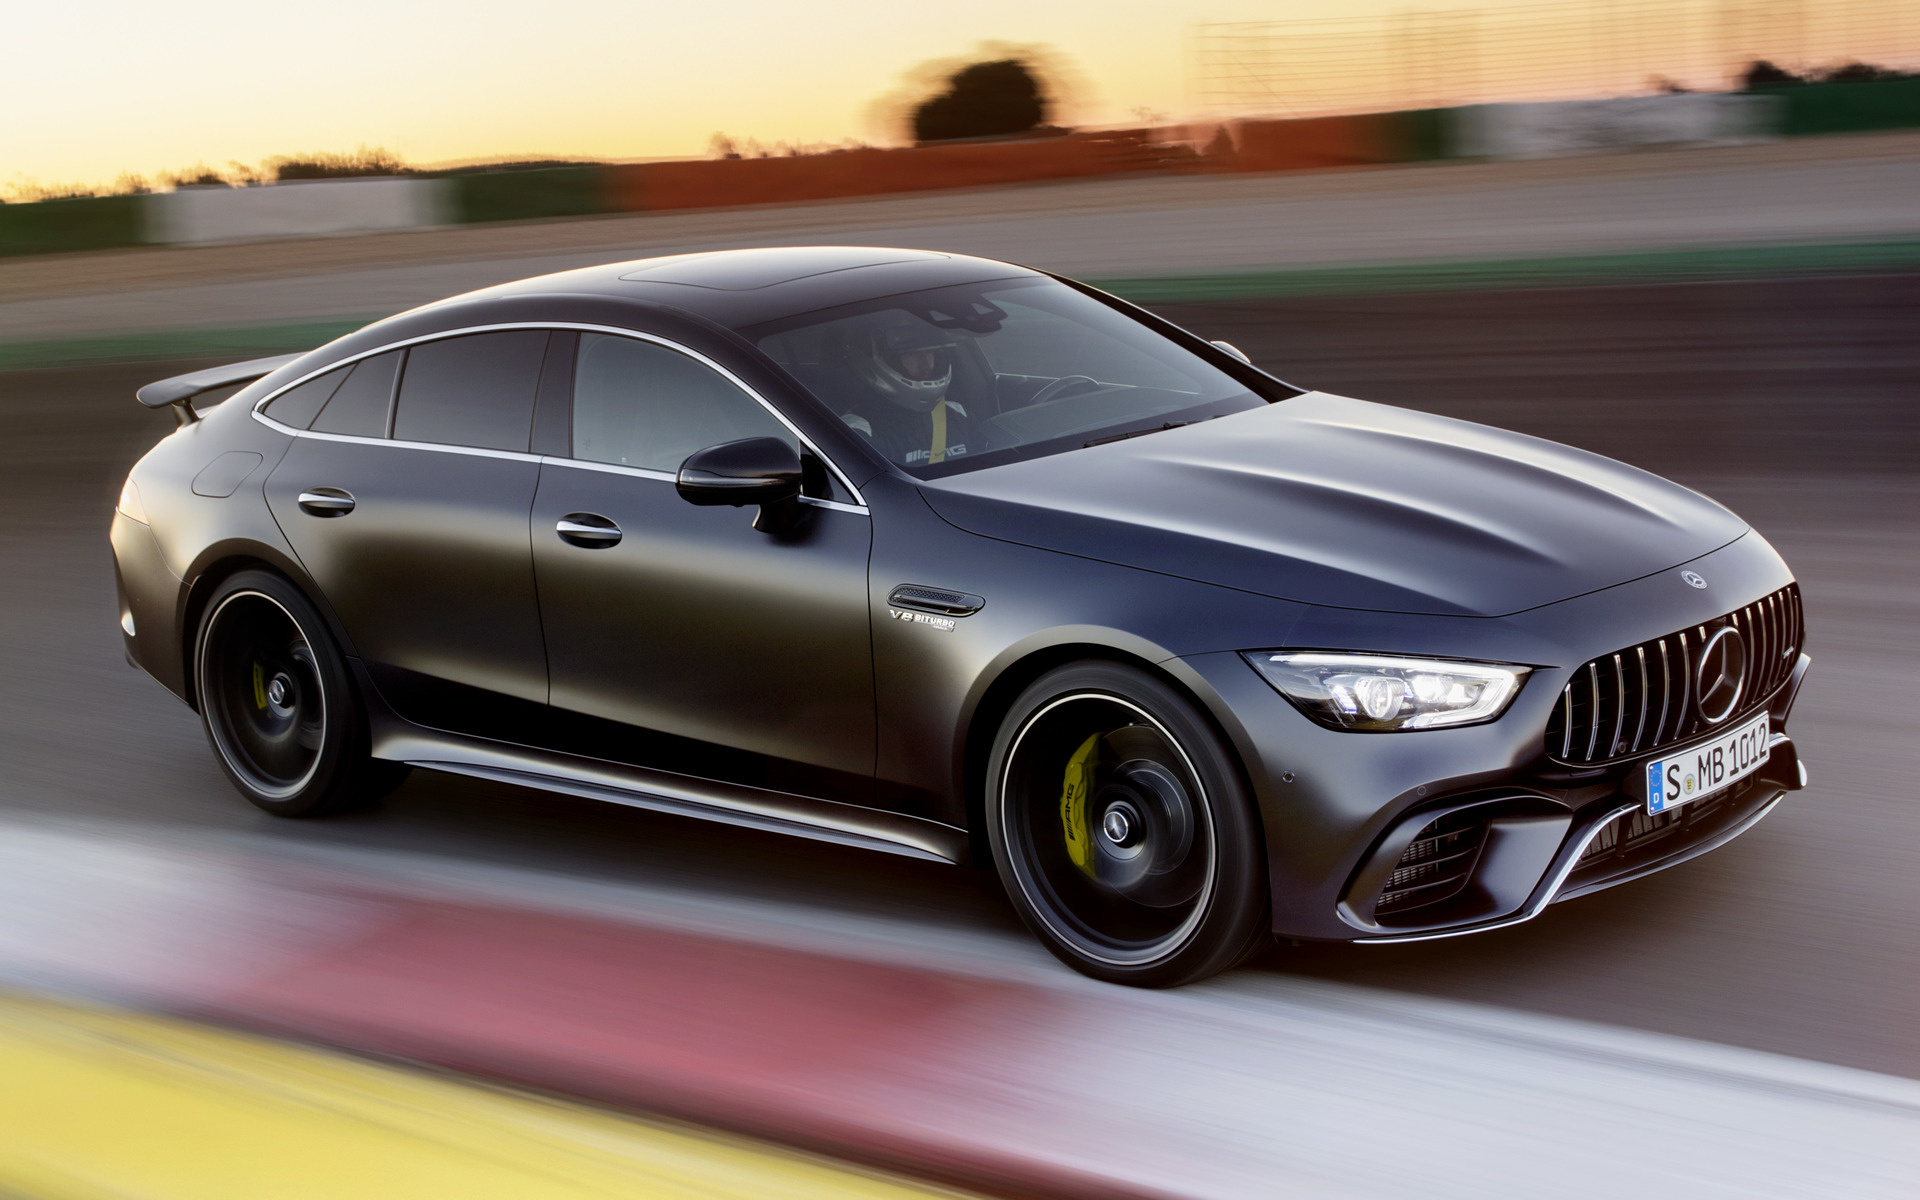 2018 Mercedes Amg Gt 63 S 4 Door Wallpapers And Hd